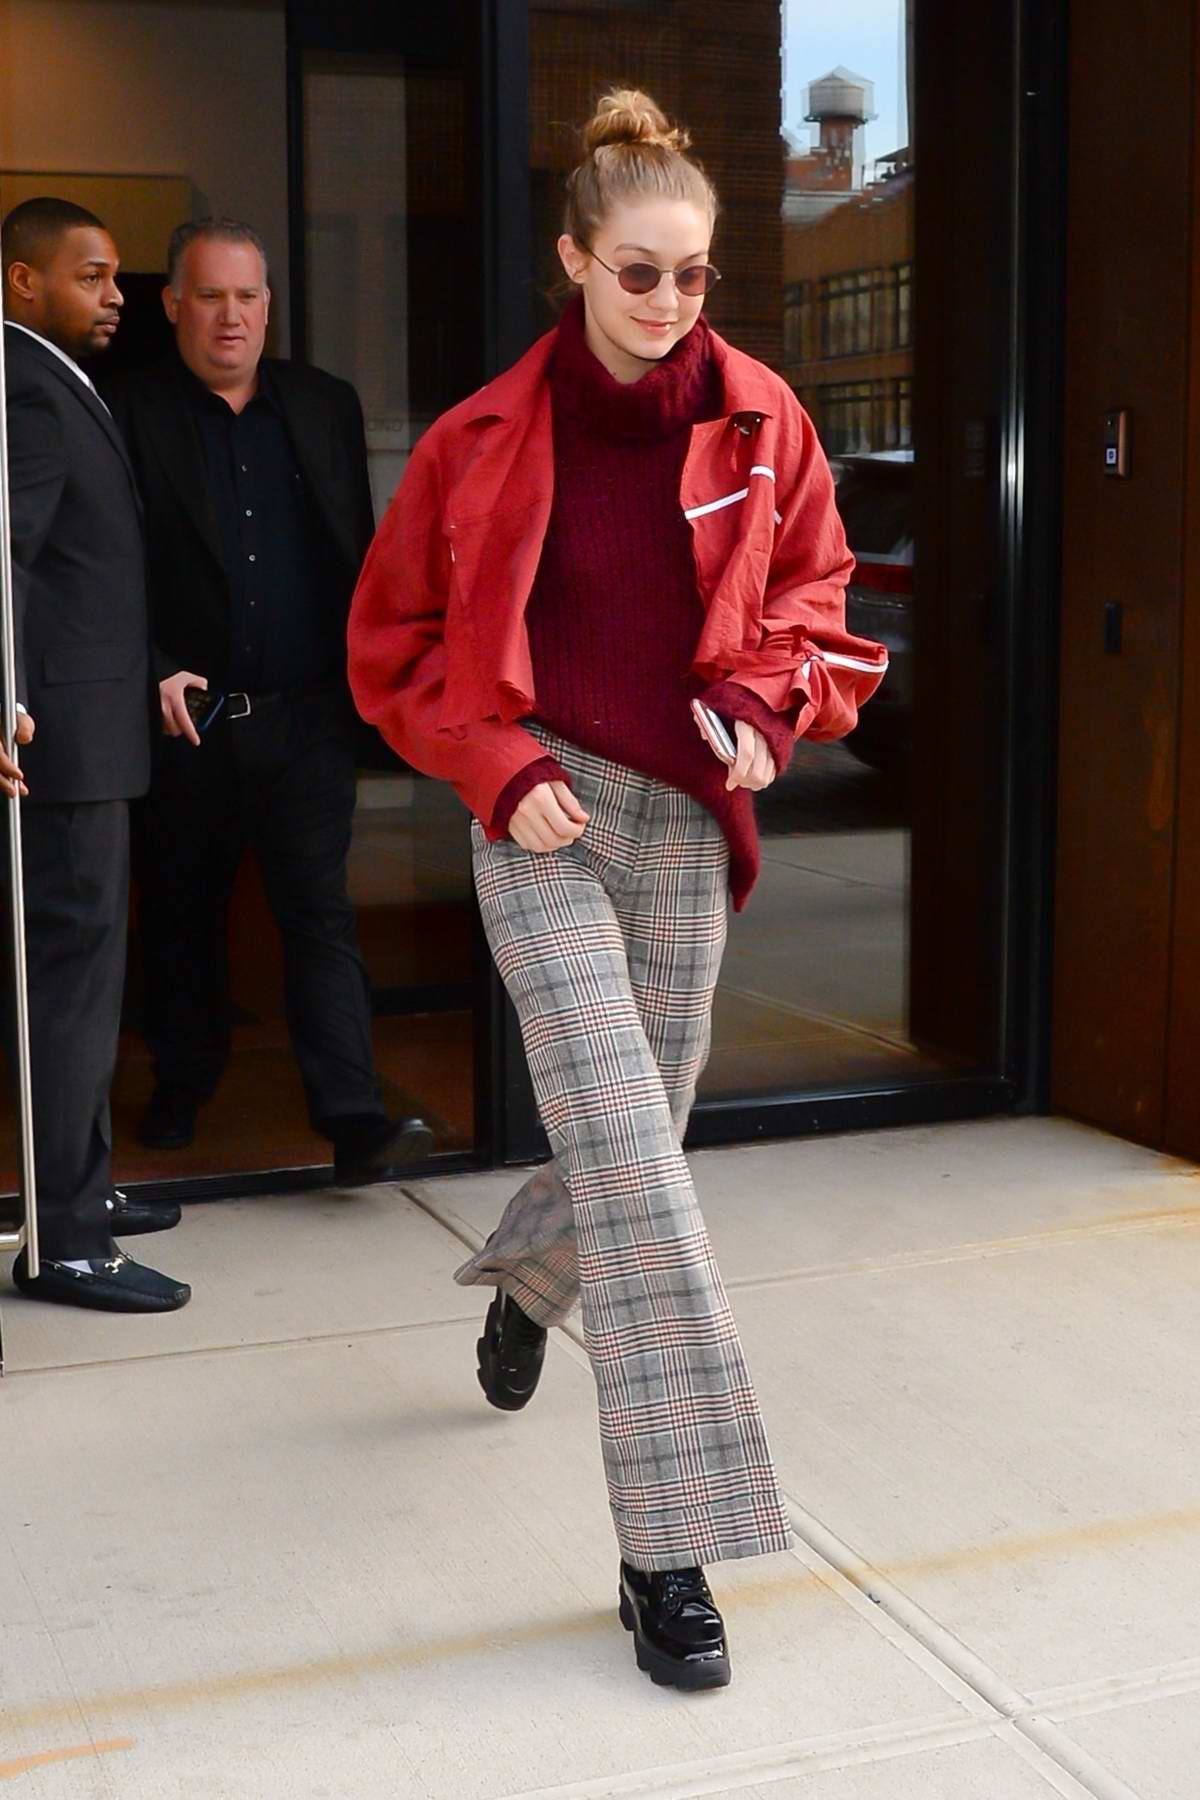 Gigi Hadid rocks a pair of checkered trousers teamed with red cropped jacket leaving her apartment in New York City